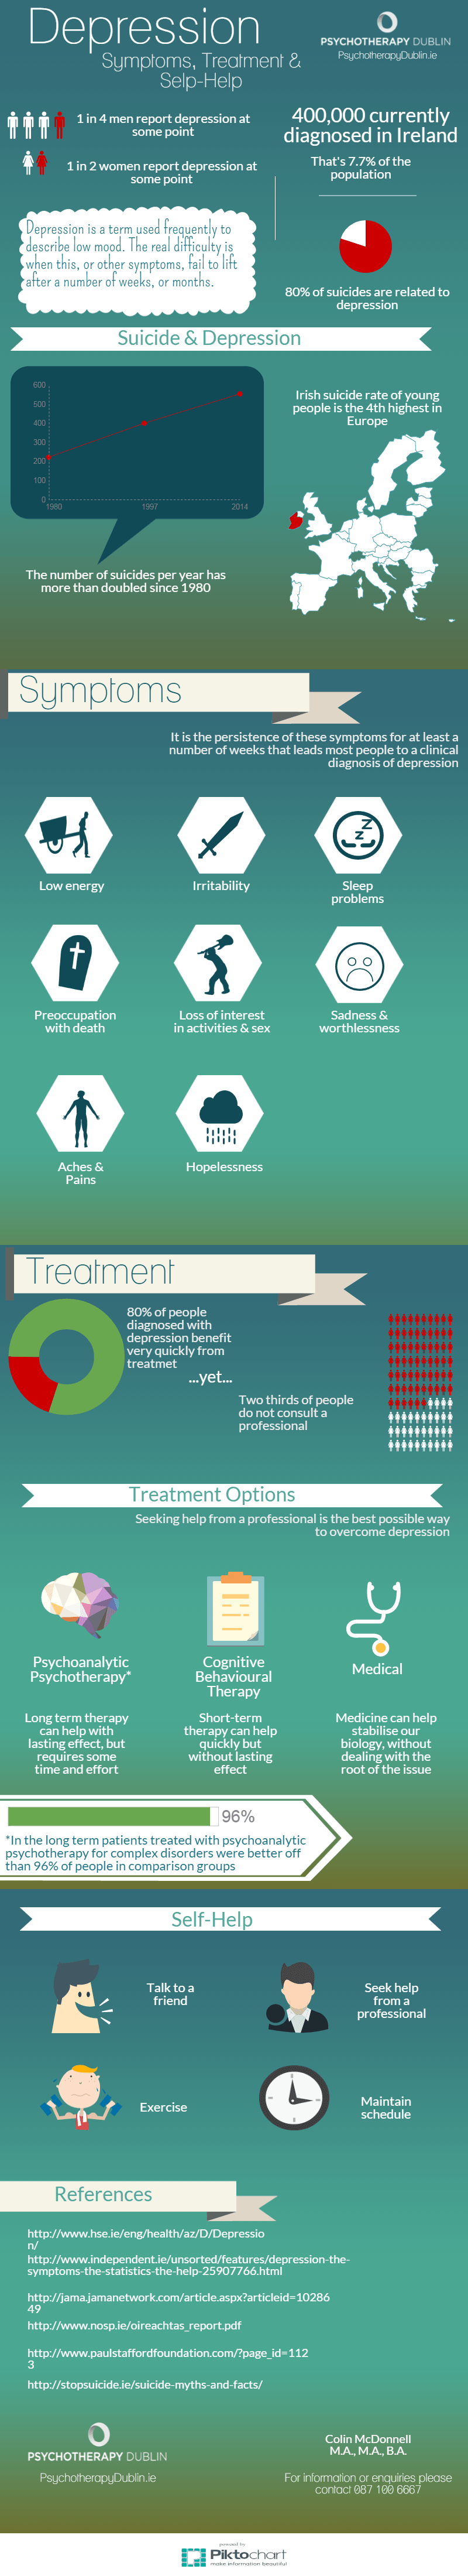 depression infographic symptoms treatment self-help